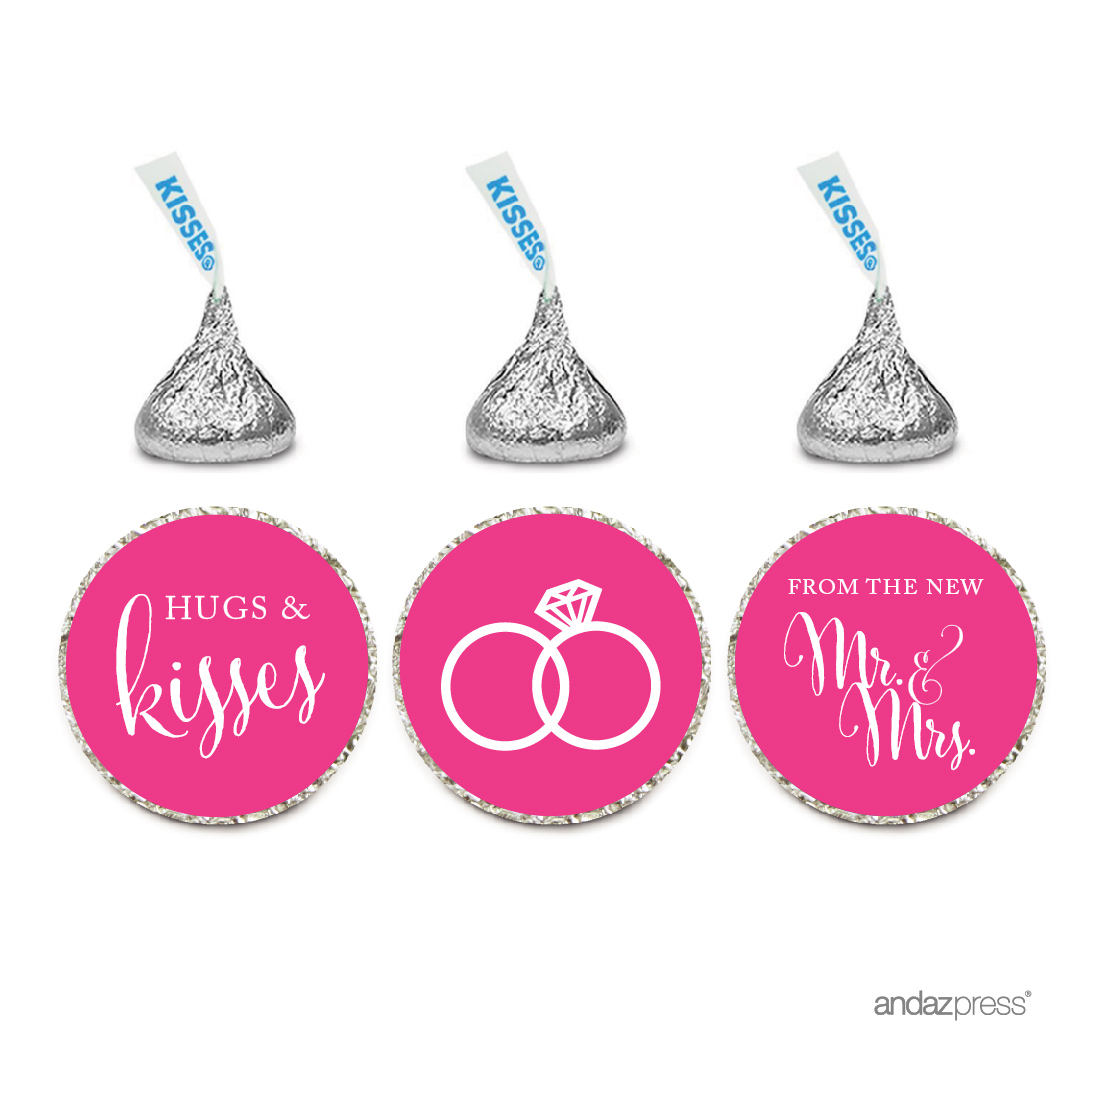 Andaz Press Wedding Party Signs: Andaz Press Chocolate Drop Labels ...